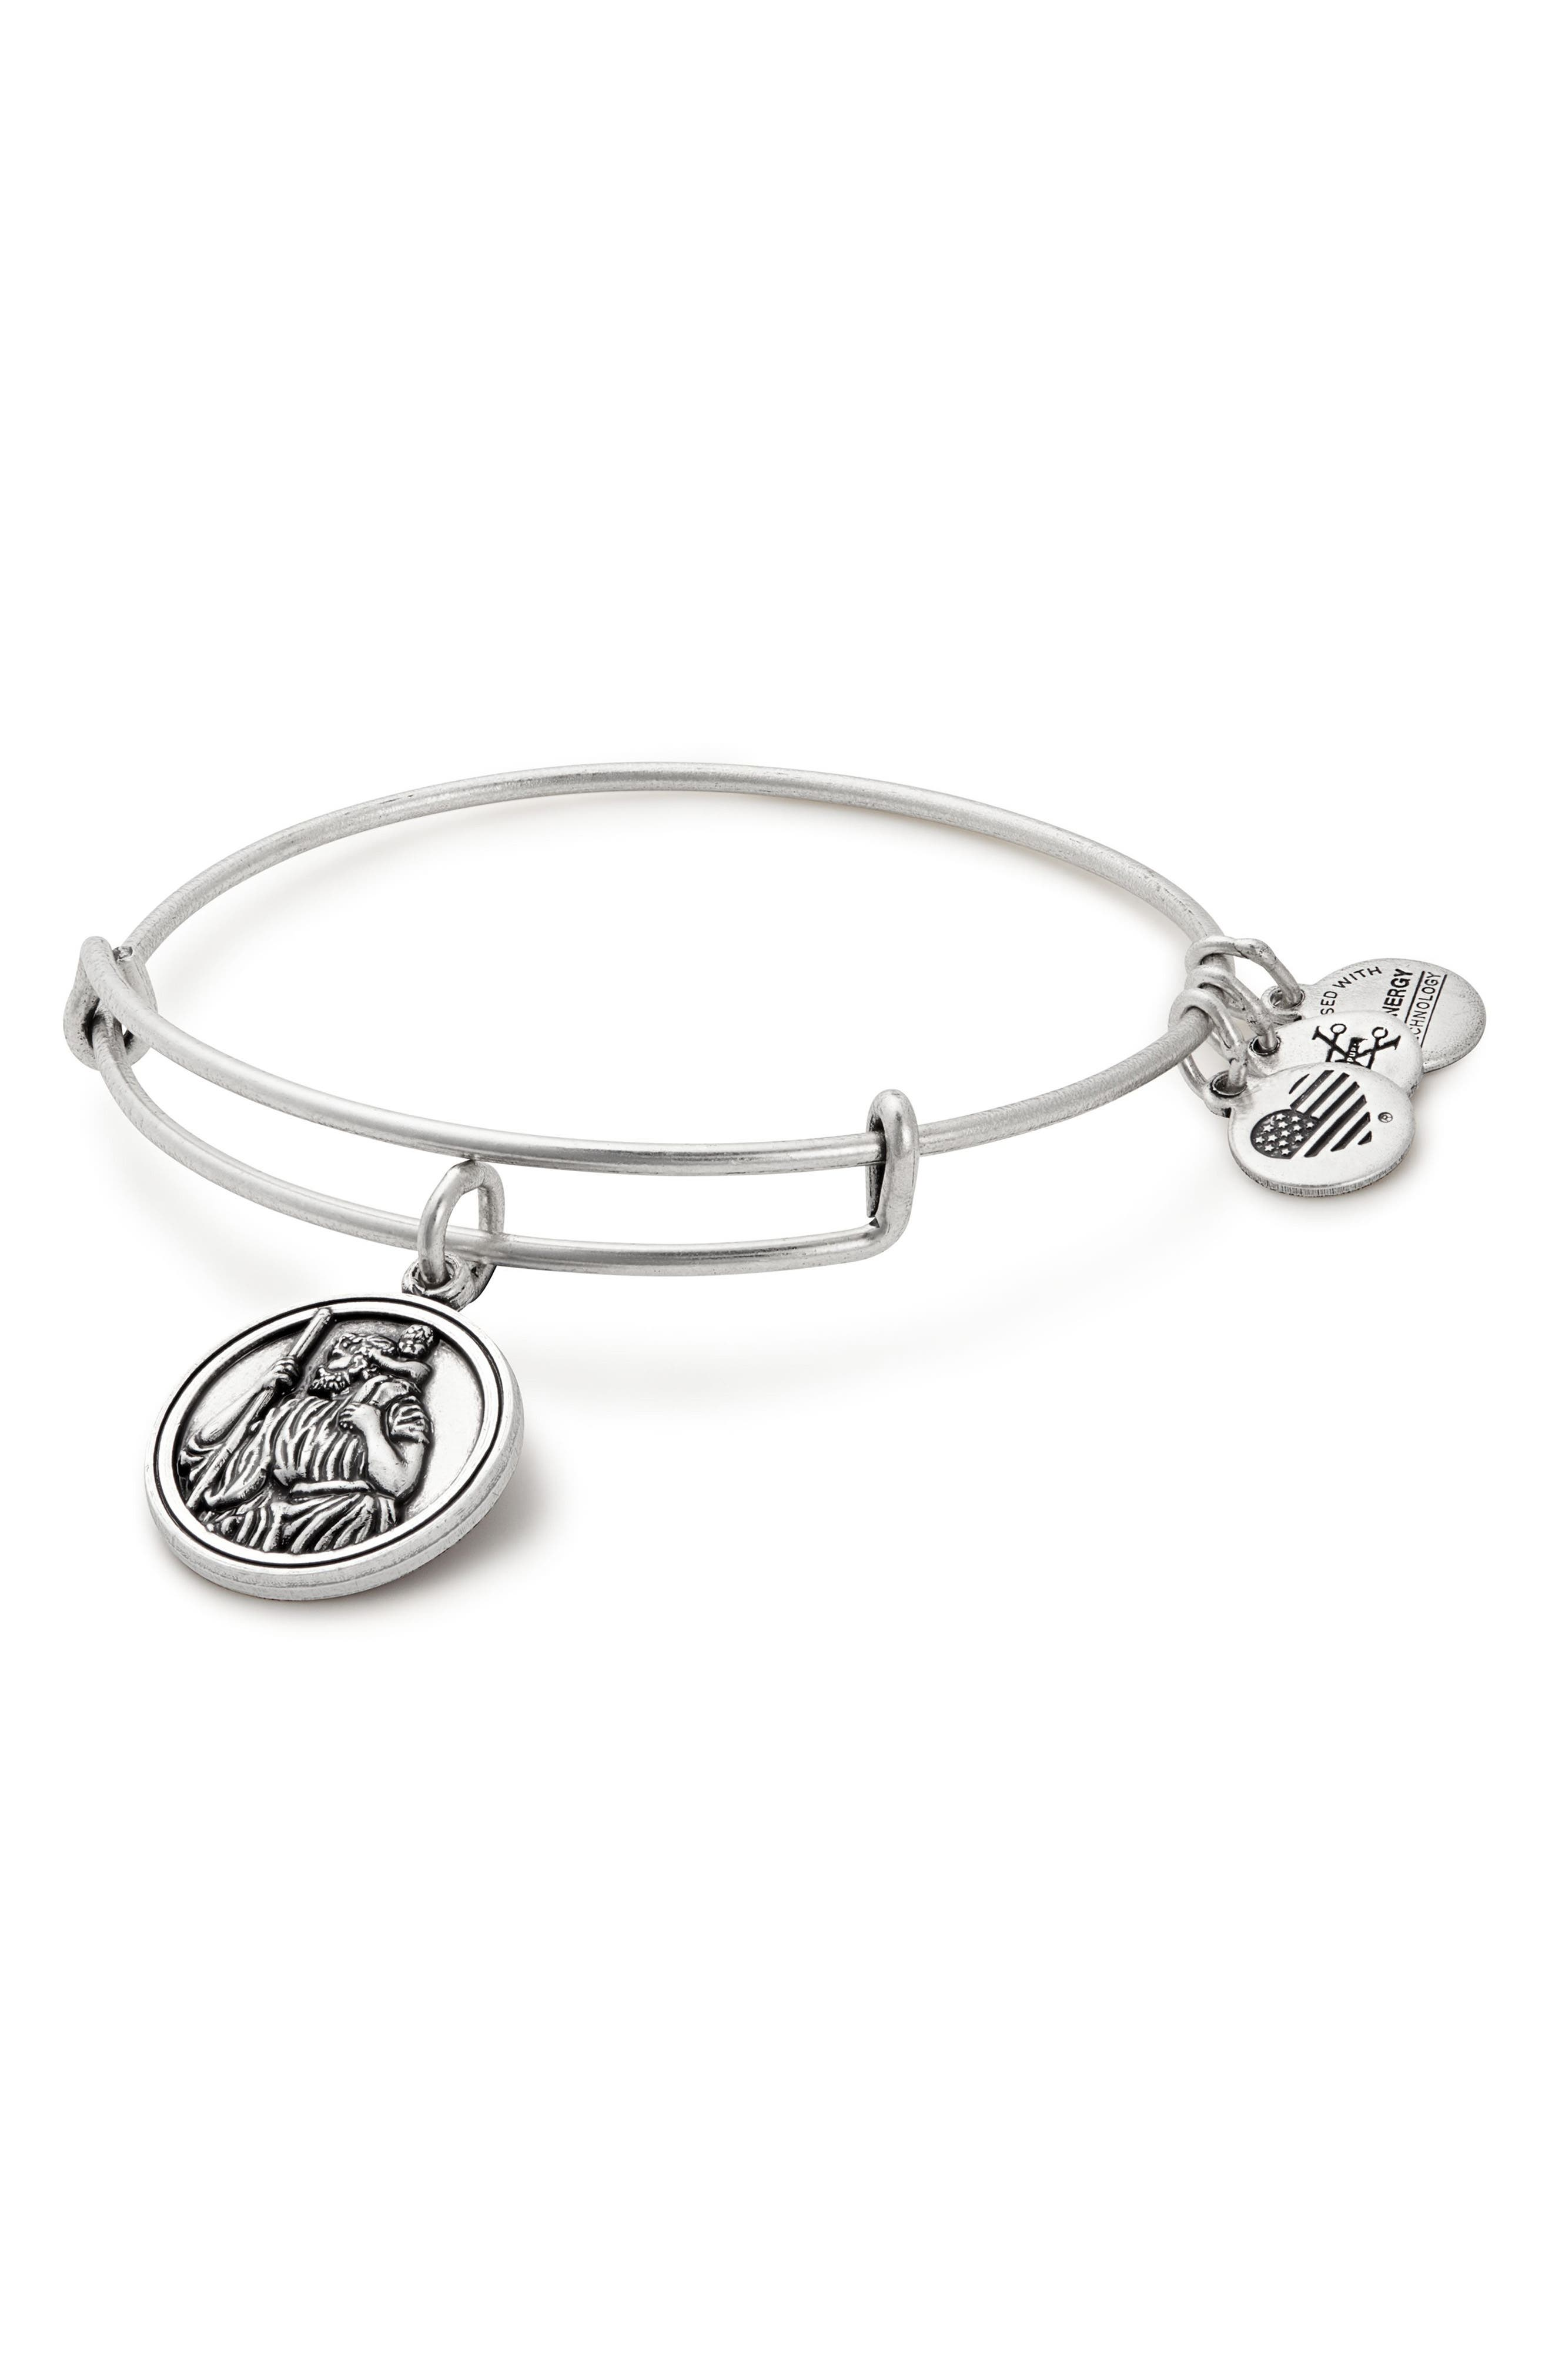 St. Christopher Adjustable Wire Bangle,                             Main thumbnail 1, color,                             040